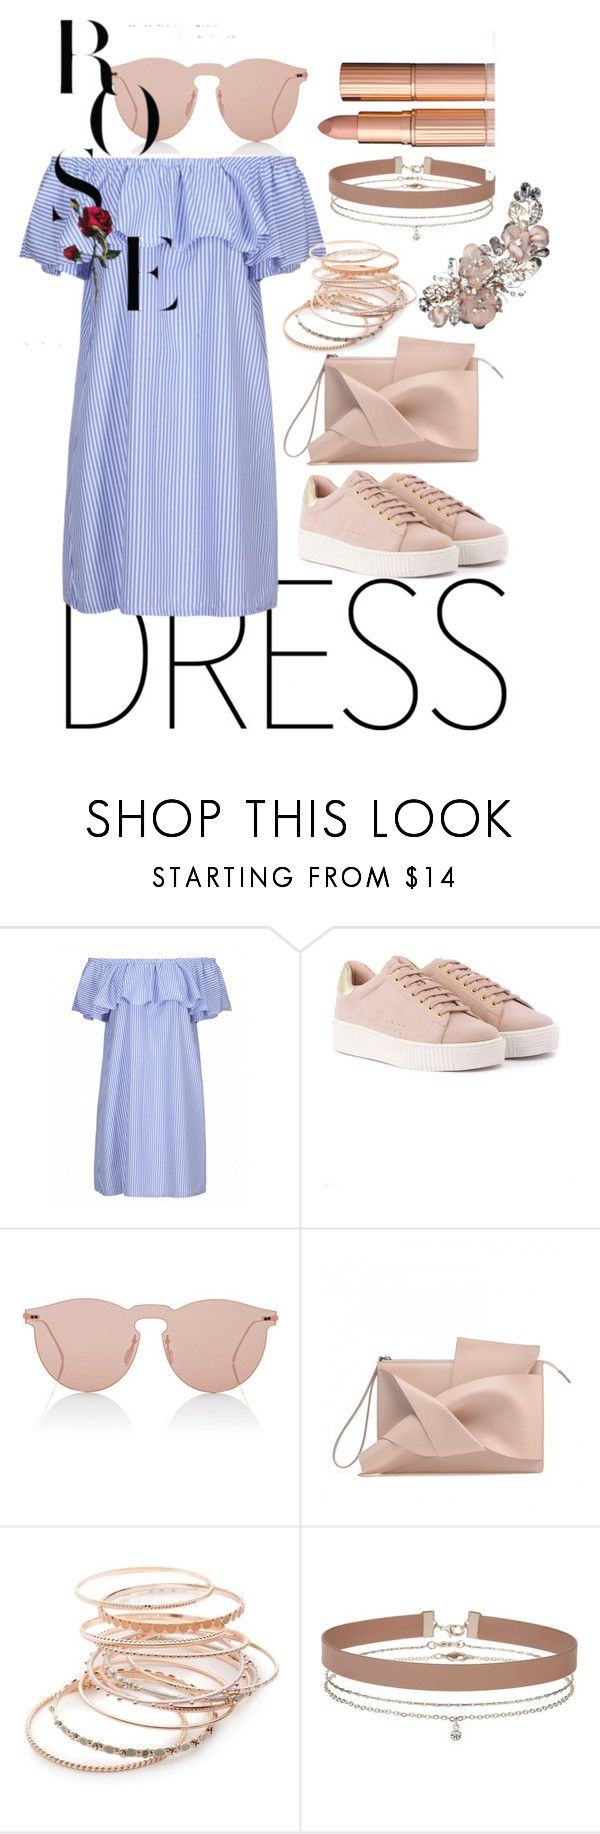 """Untitled #74"" by galg123 ❤ liked on Polyvore featuring Illesteva, Red Camel and Miss Selfridge"